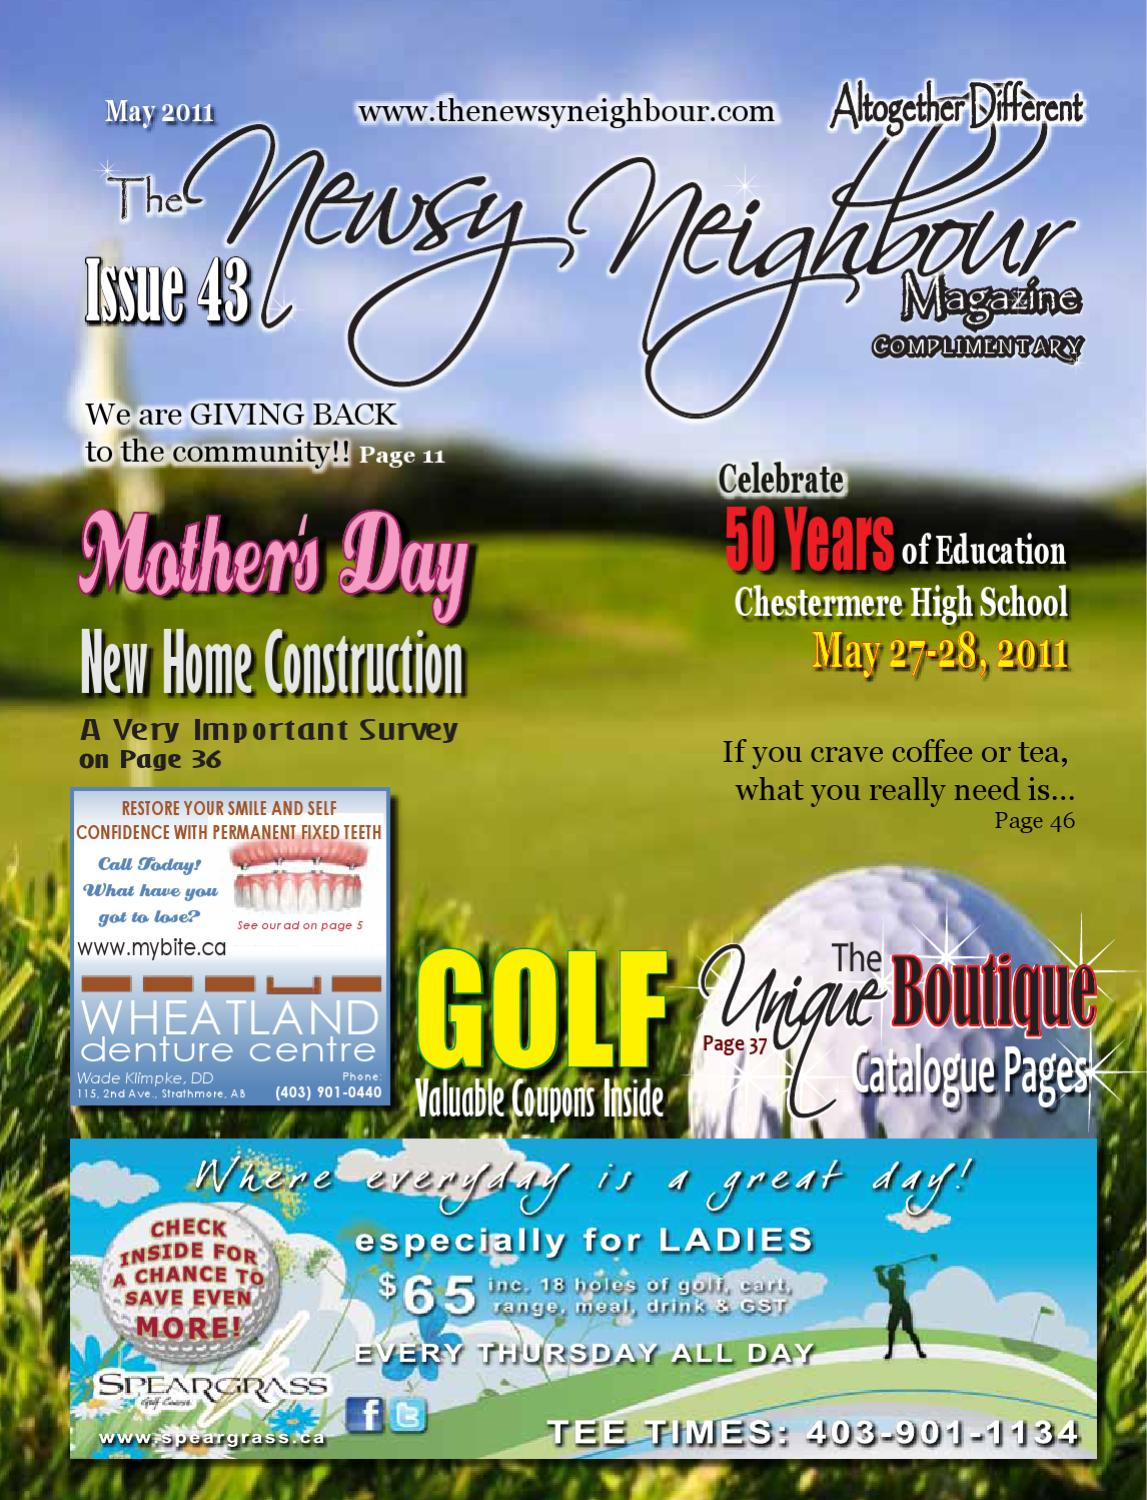 The Newsy Neighbour Issue 43 By Neighbor Issuu Parcel Kristal Pja 1637